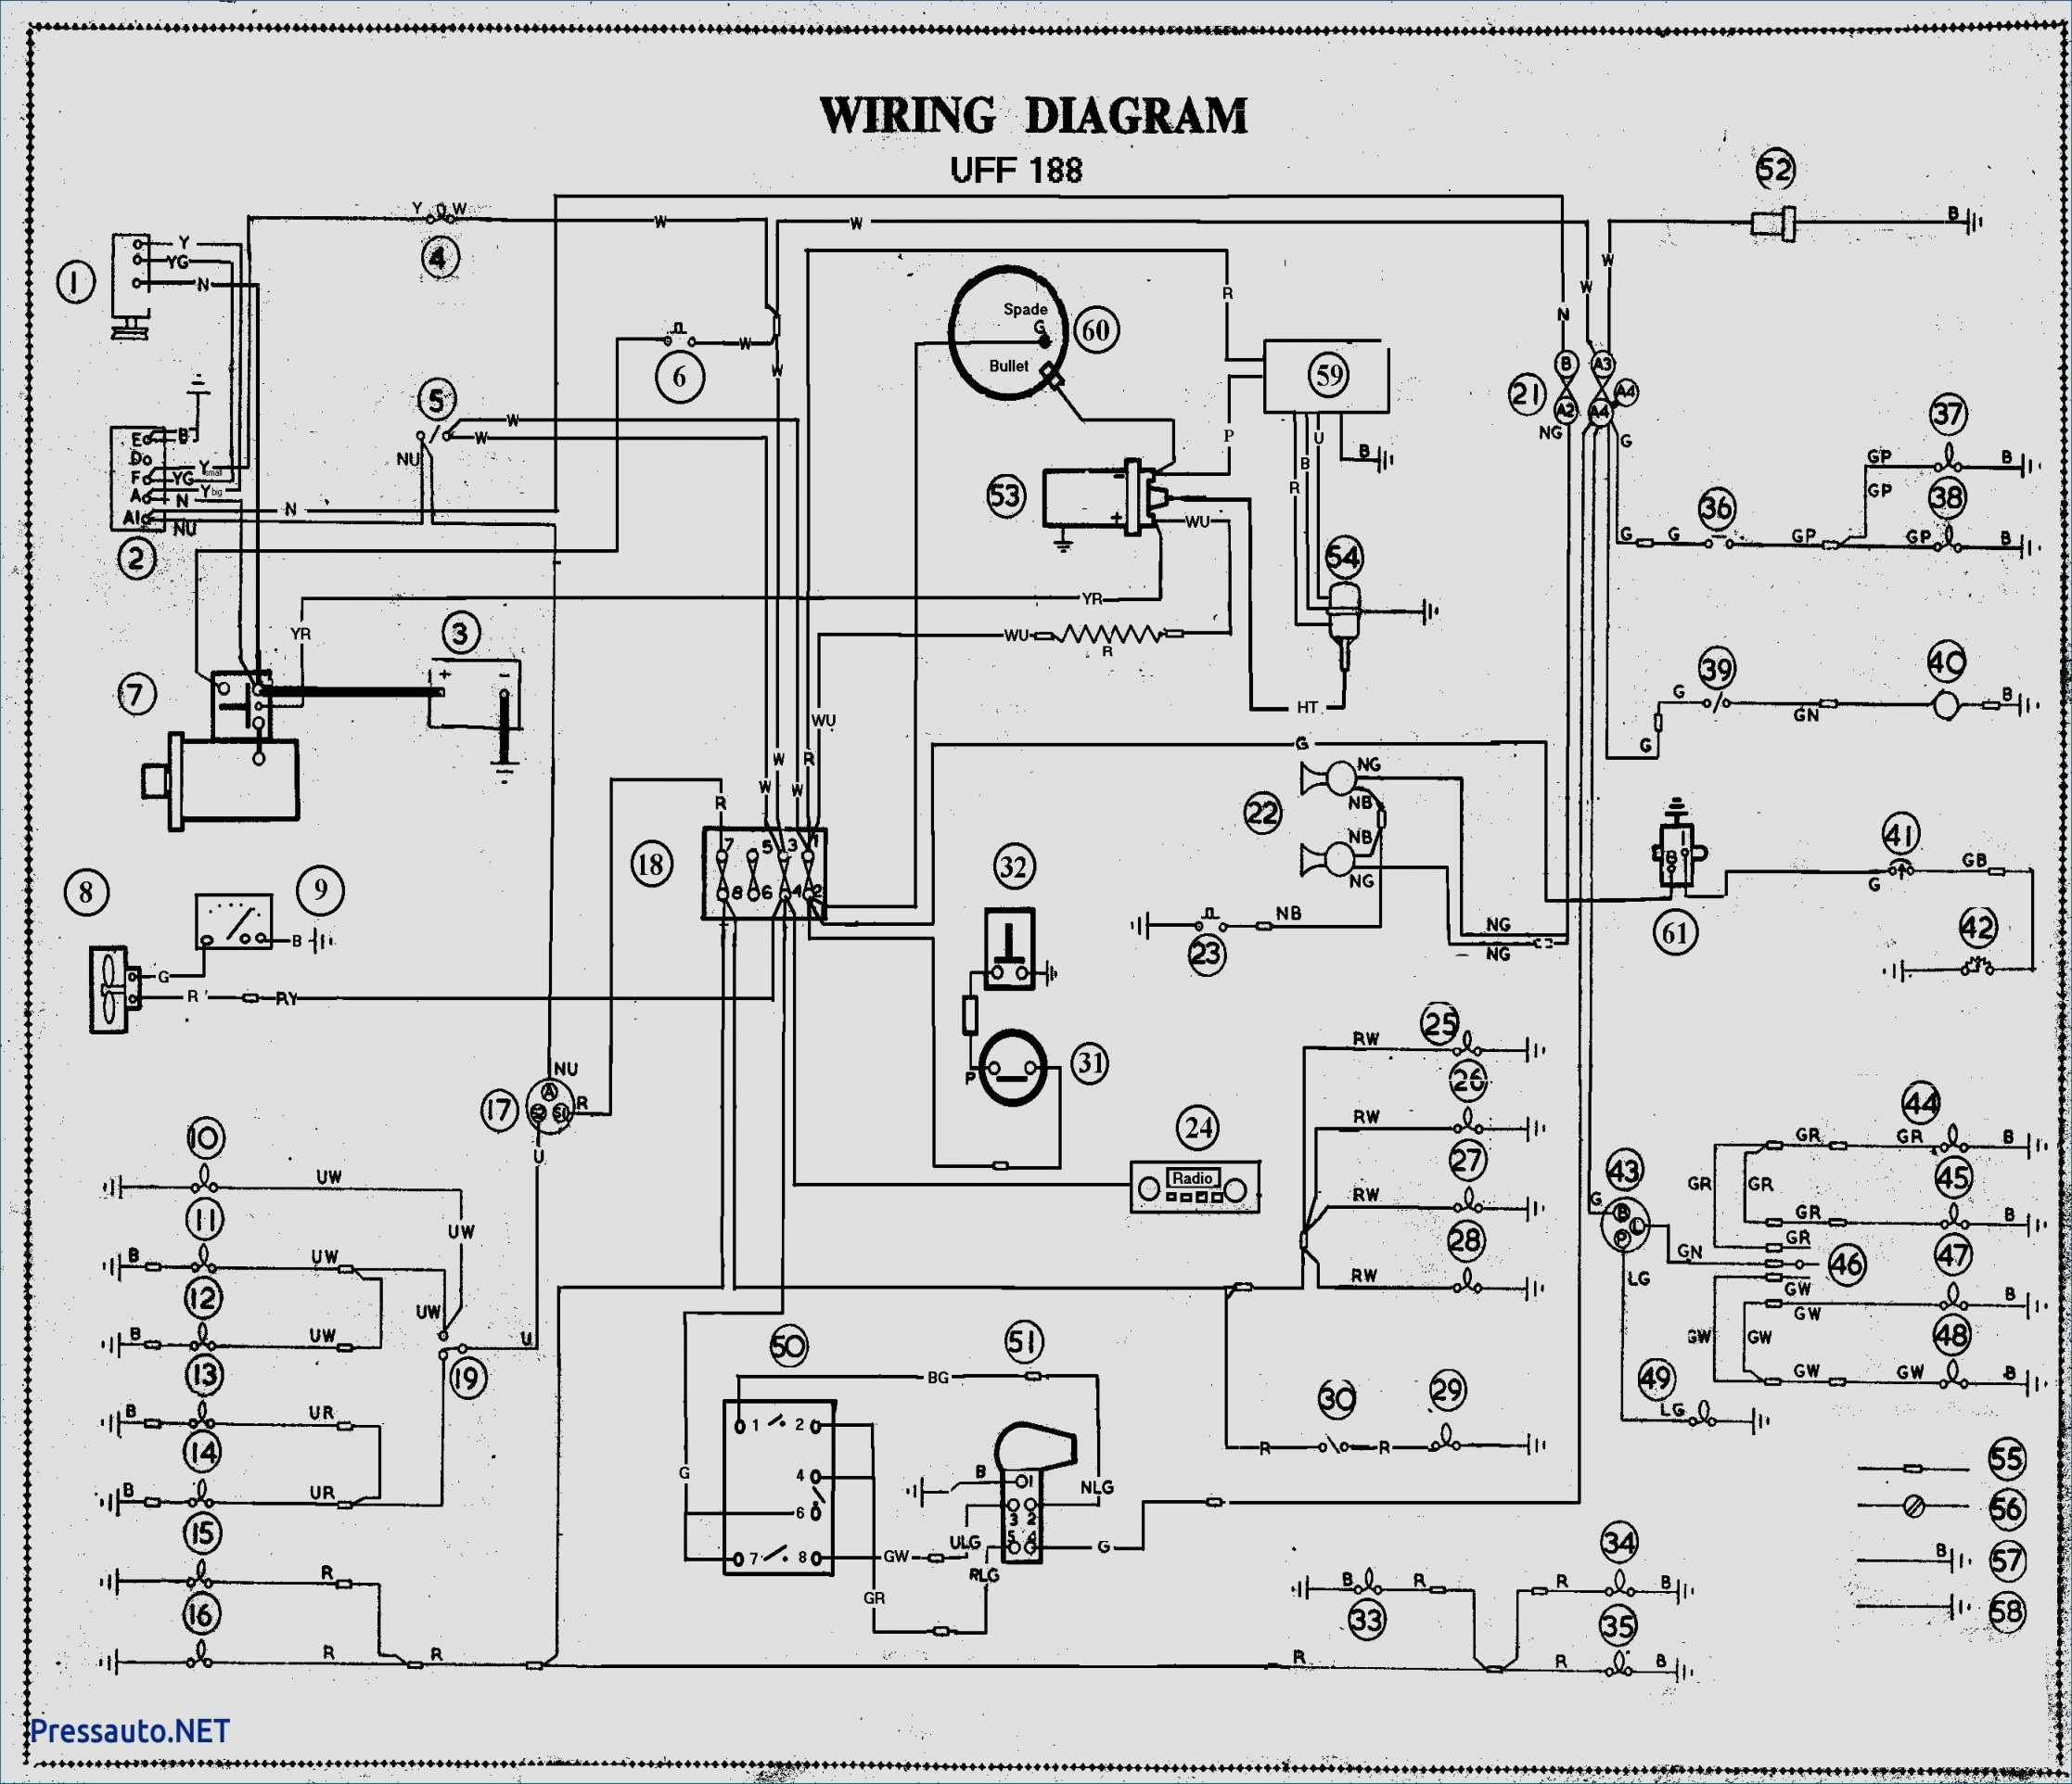 Bulldog Remote Car Starter Wiring Diagram